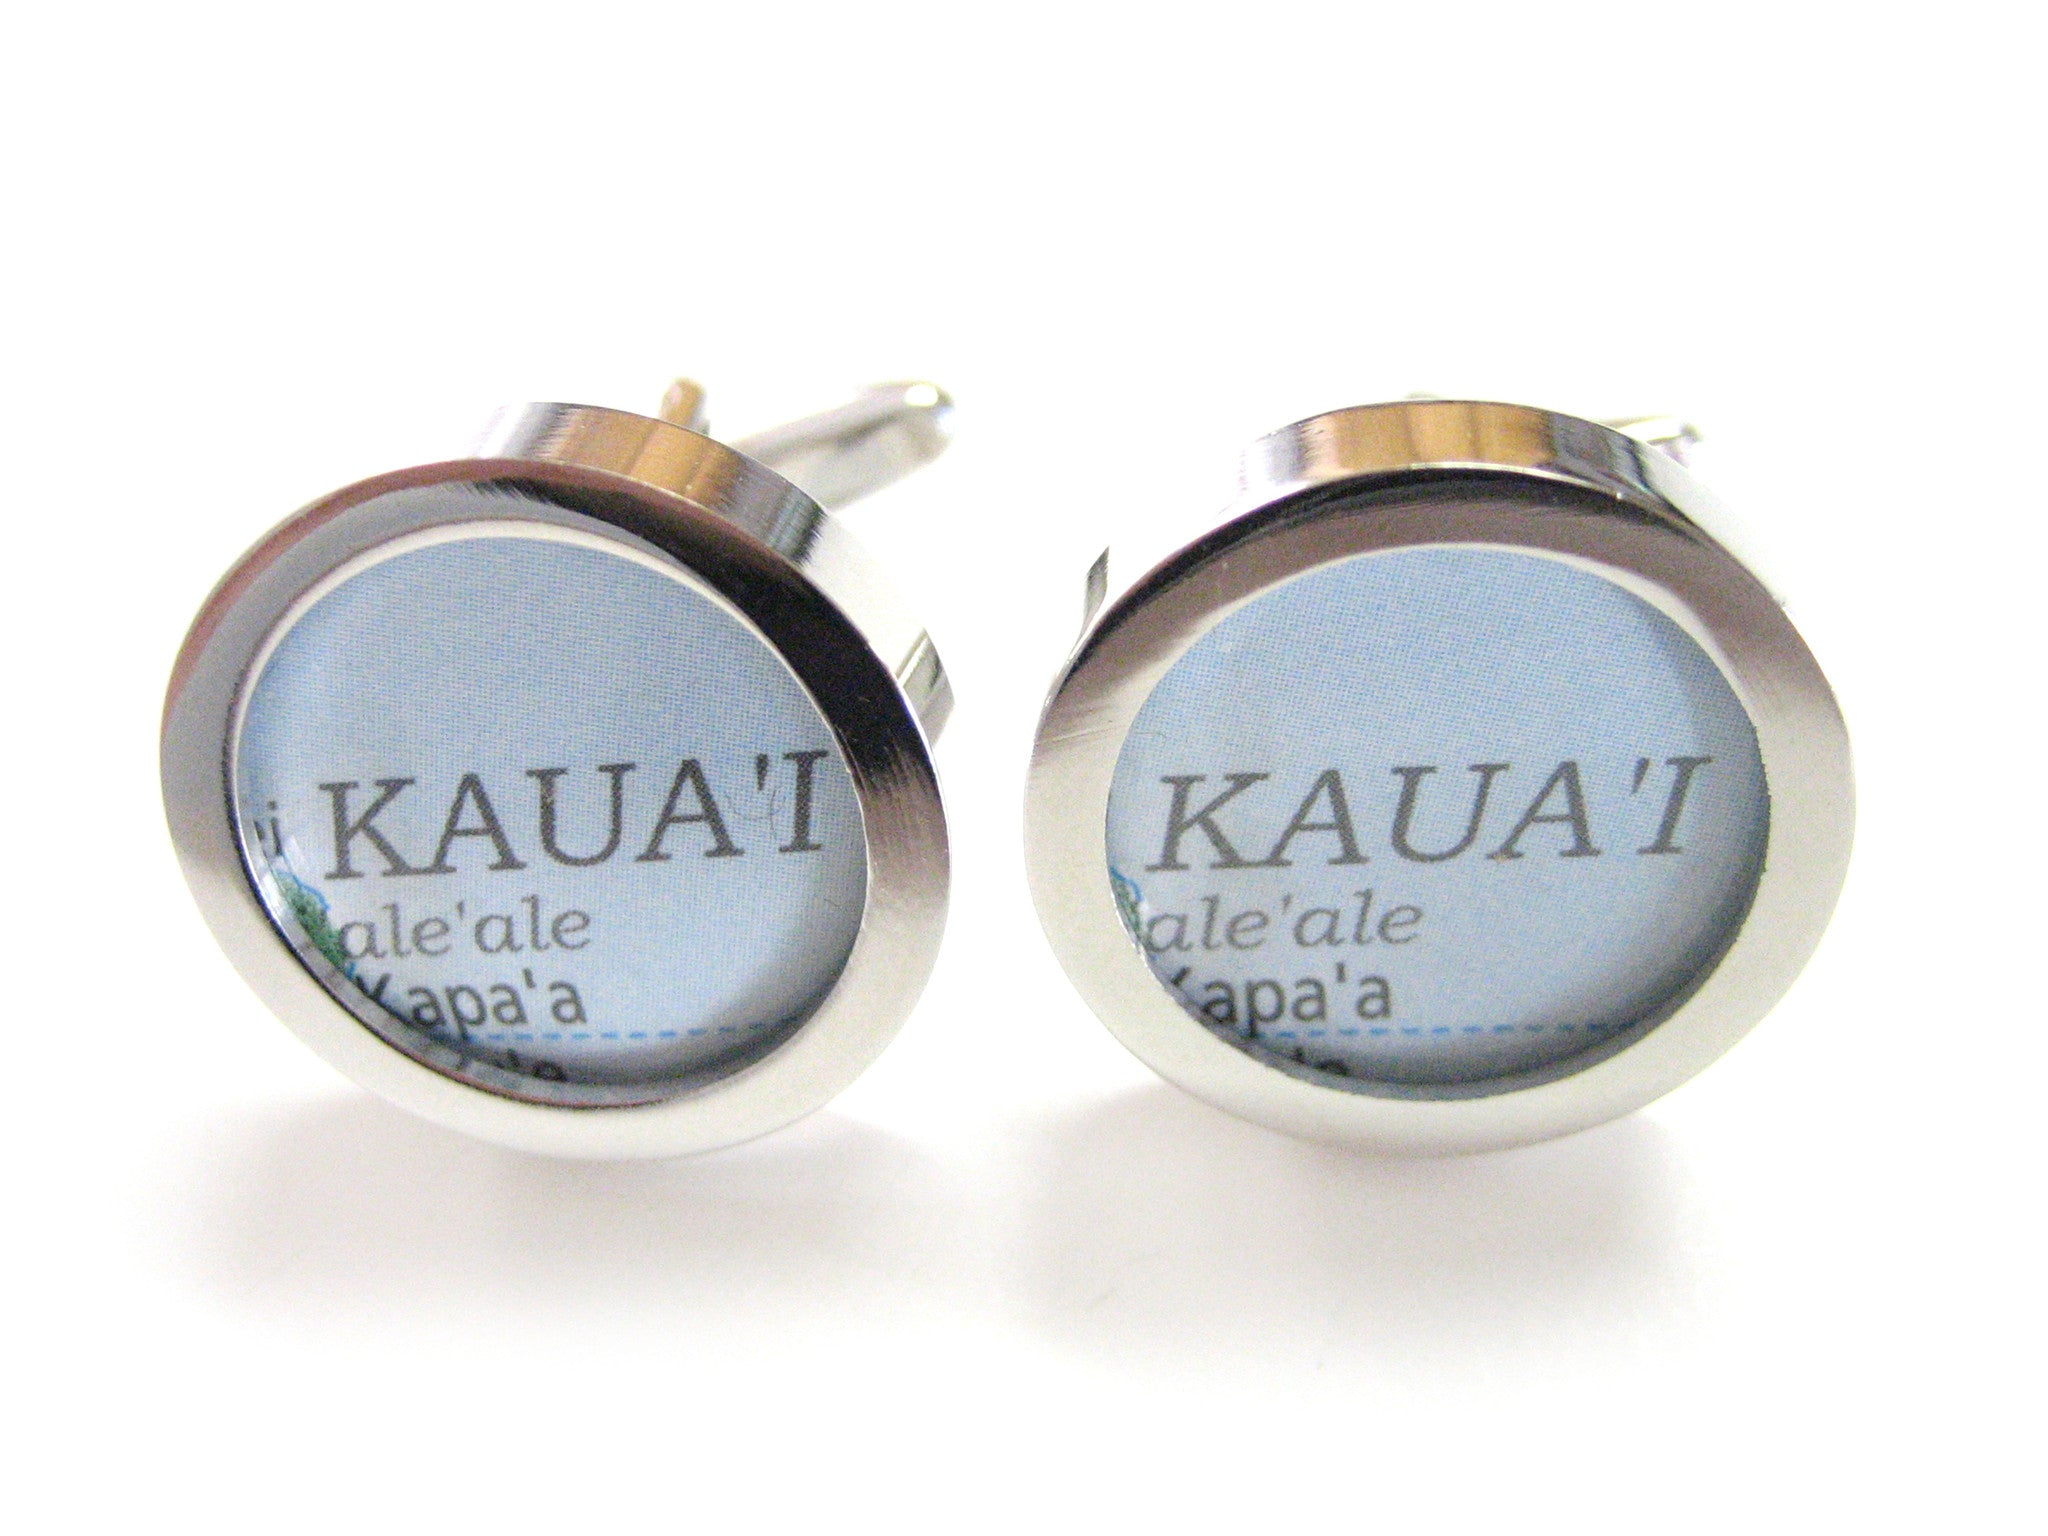 Kauai Hawaii Map Cufflinks